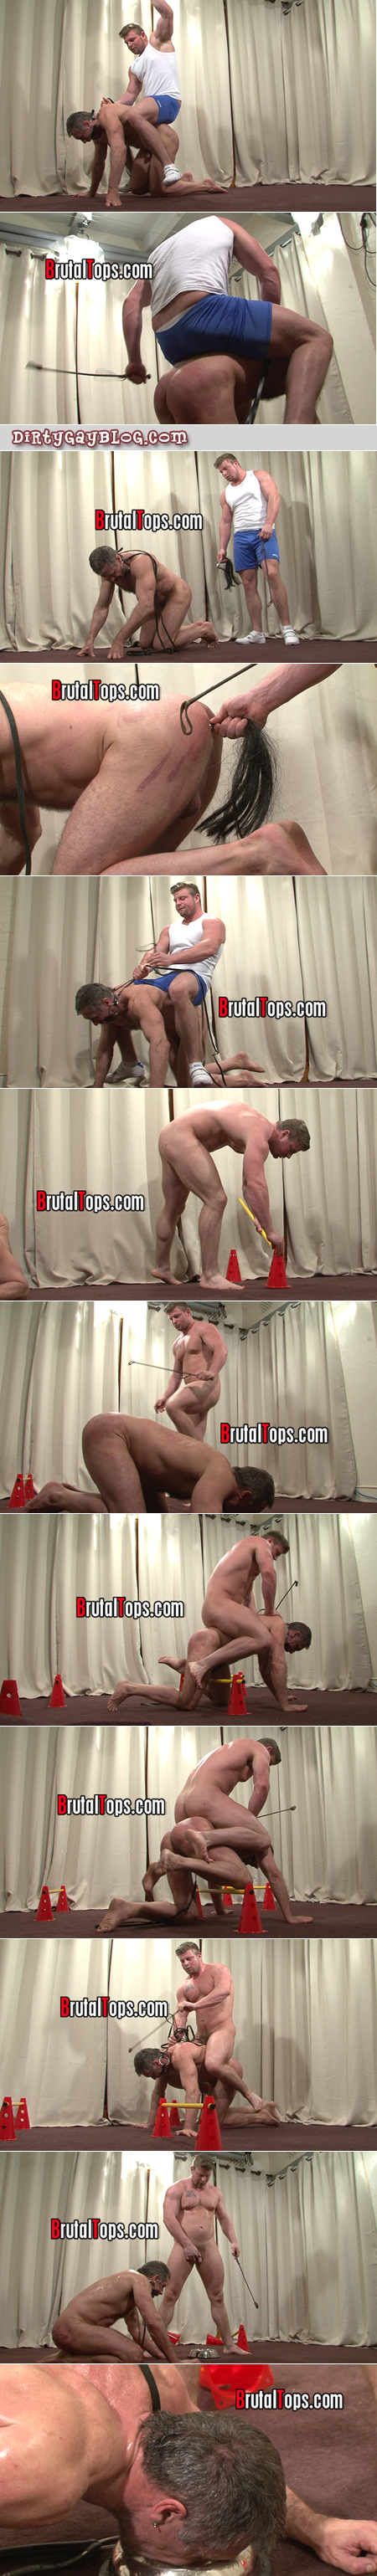 Blonde muscle stud turns a muscular silver Daddy into his donkey through gay BDSM.